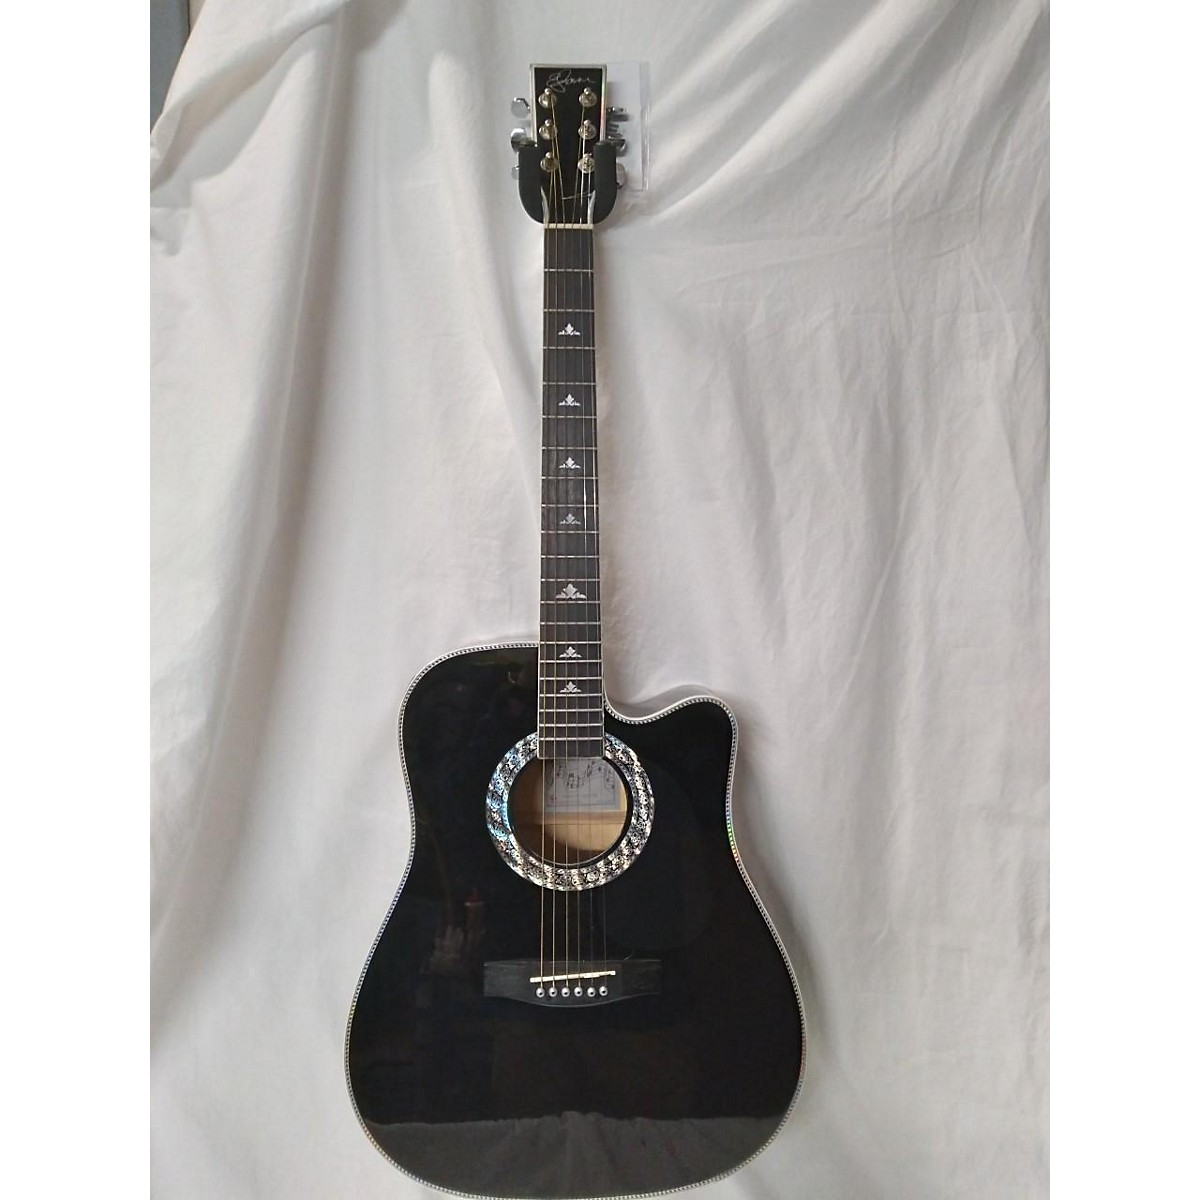 Esteban American Legacy Acoustic Electric Guitar